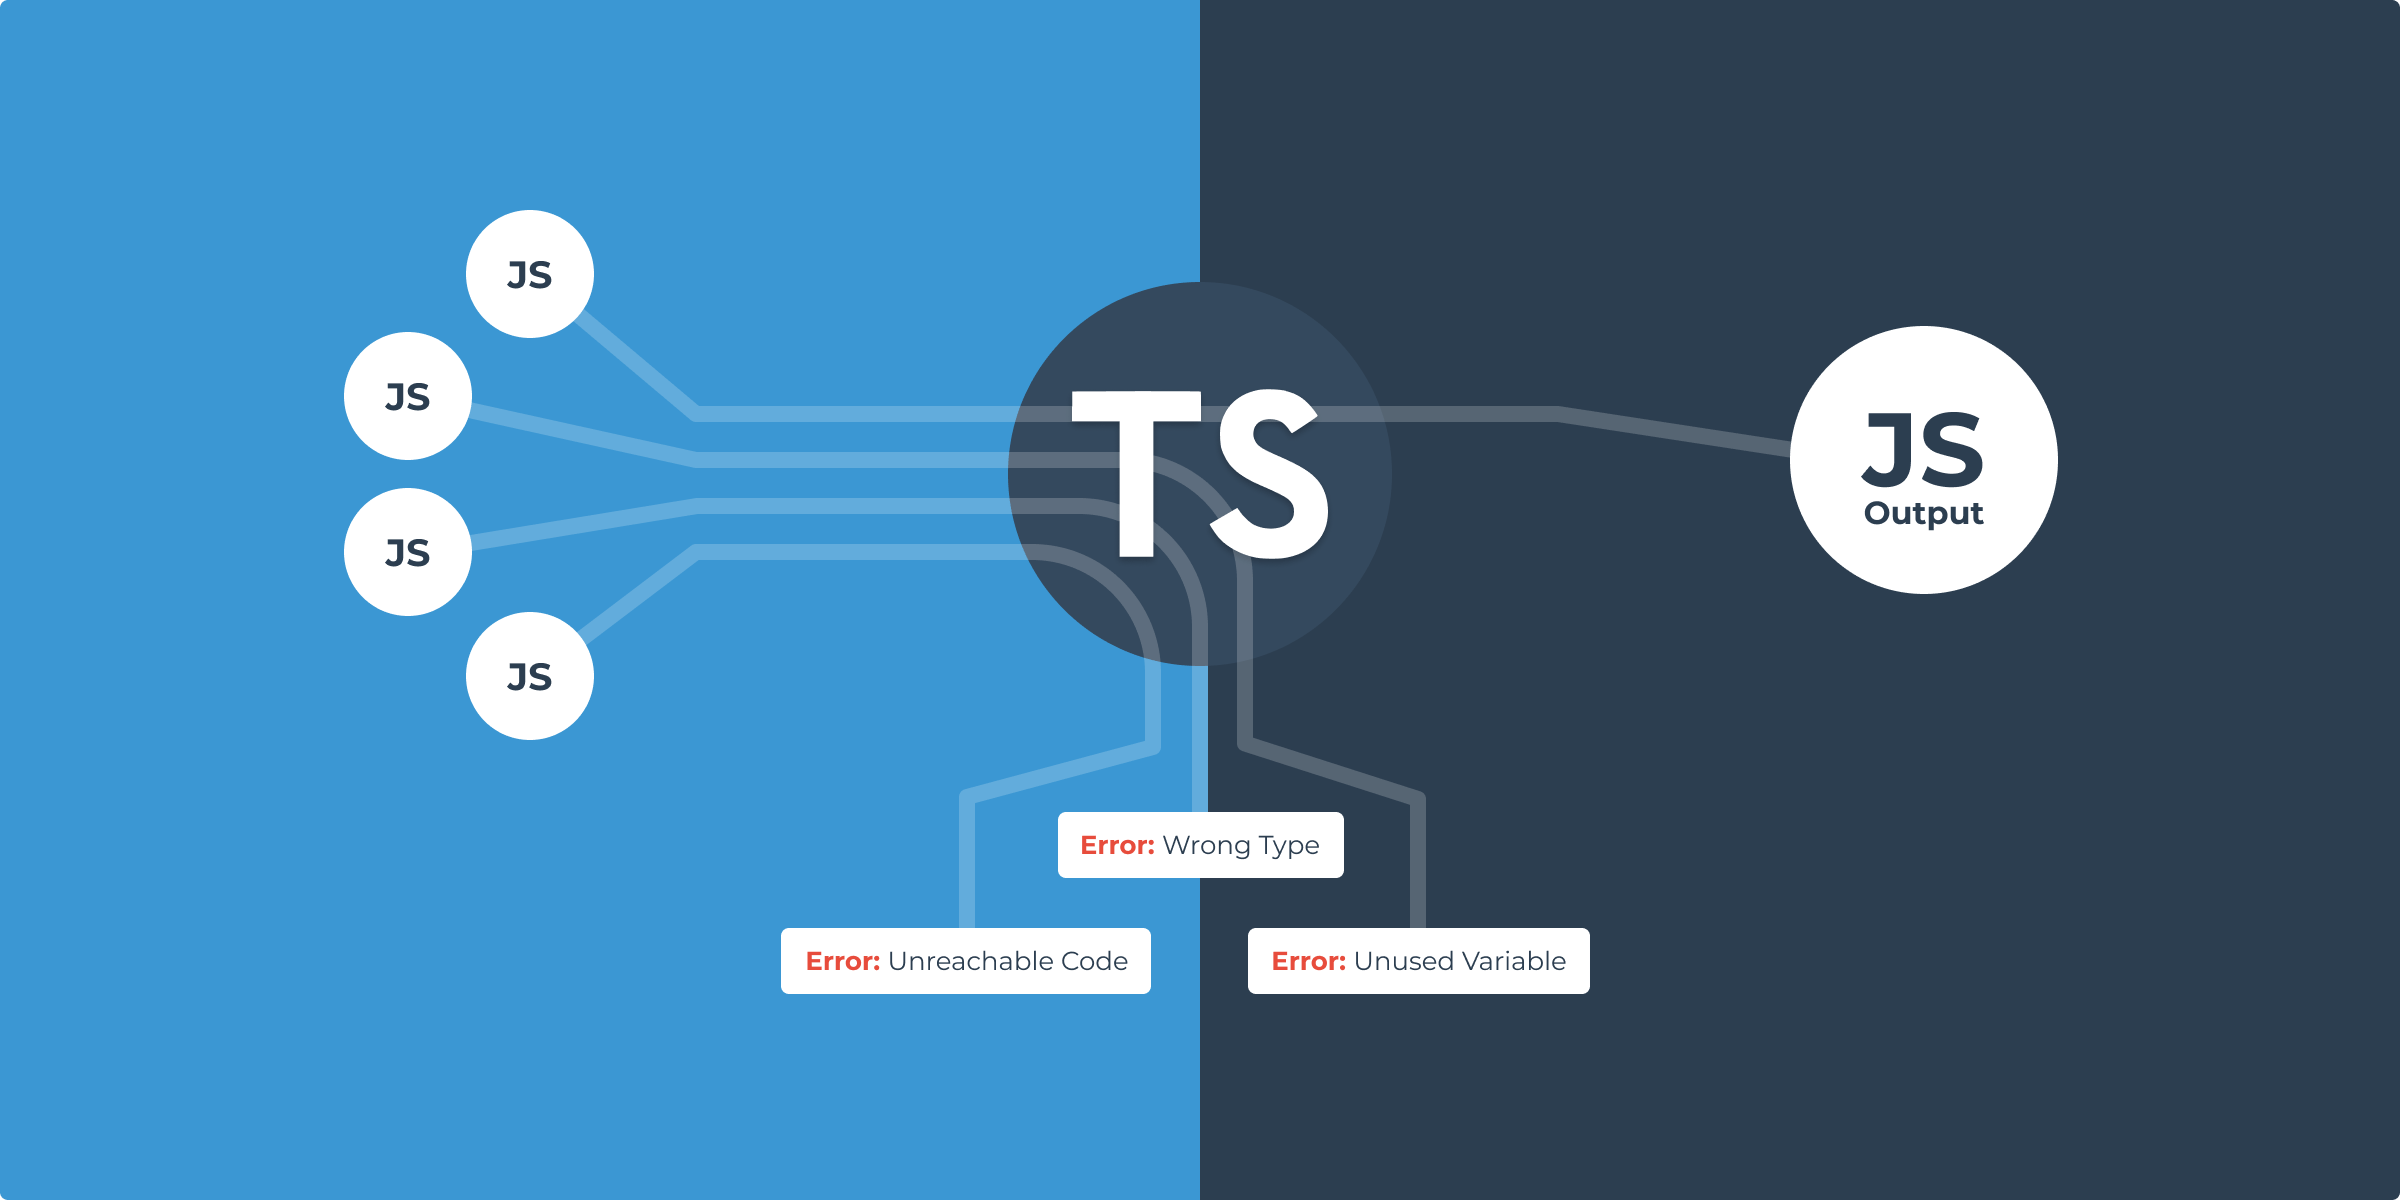 Typescript helps to catch improper typings, unreachable code, and unused variables.